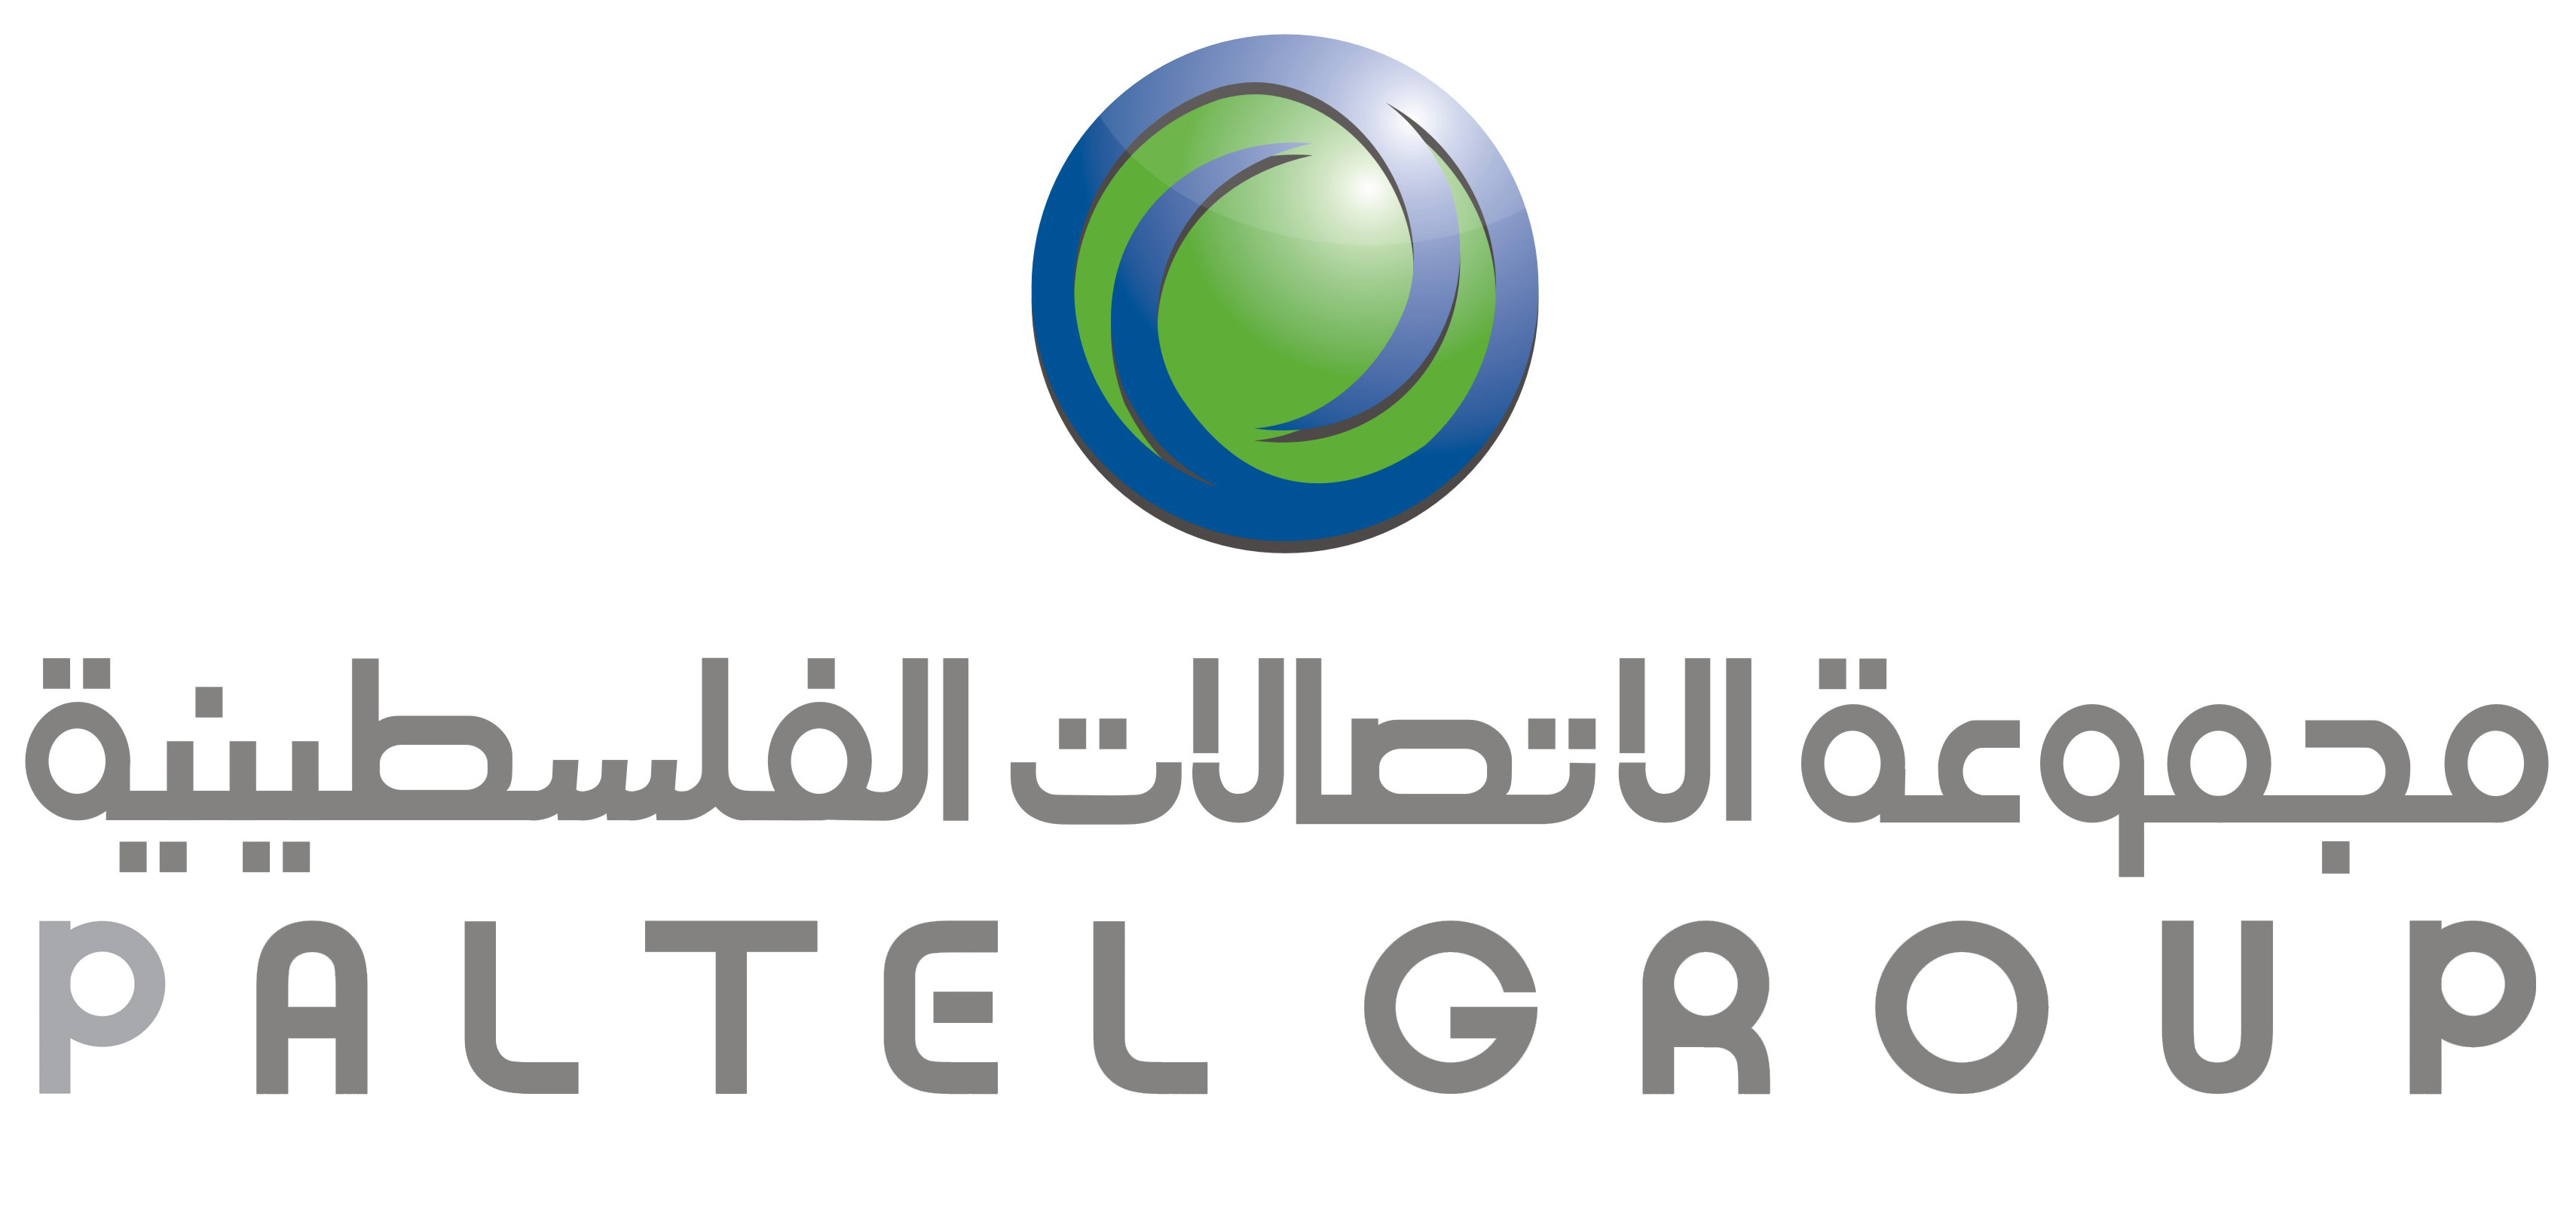 PAL-TEL GROUP PALESTINE .jpg